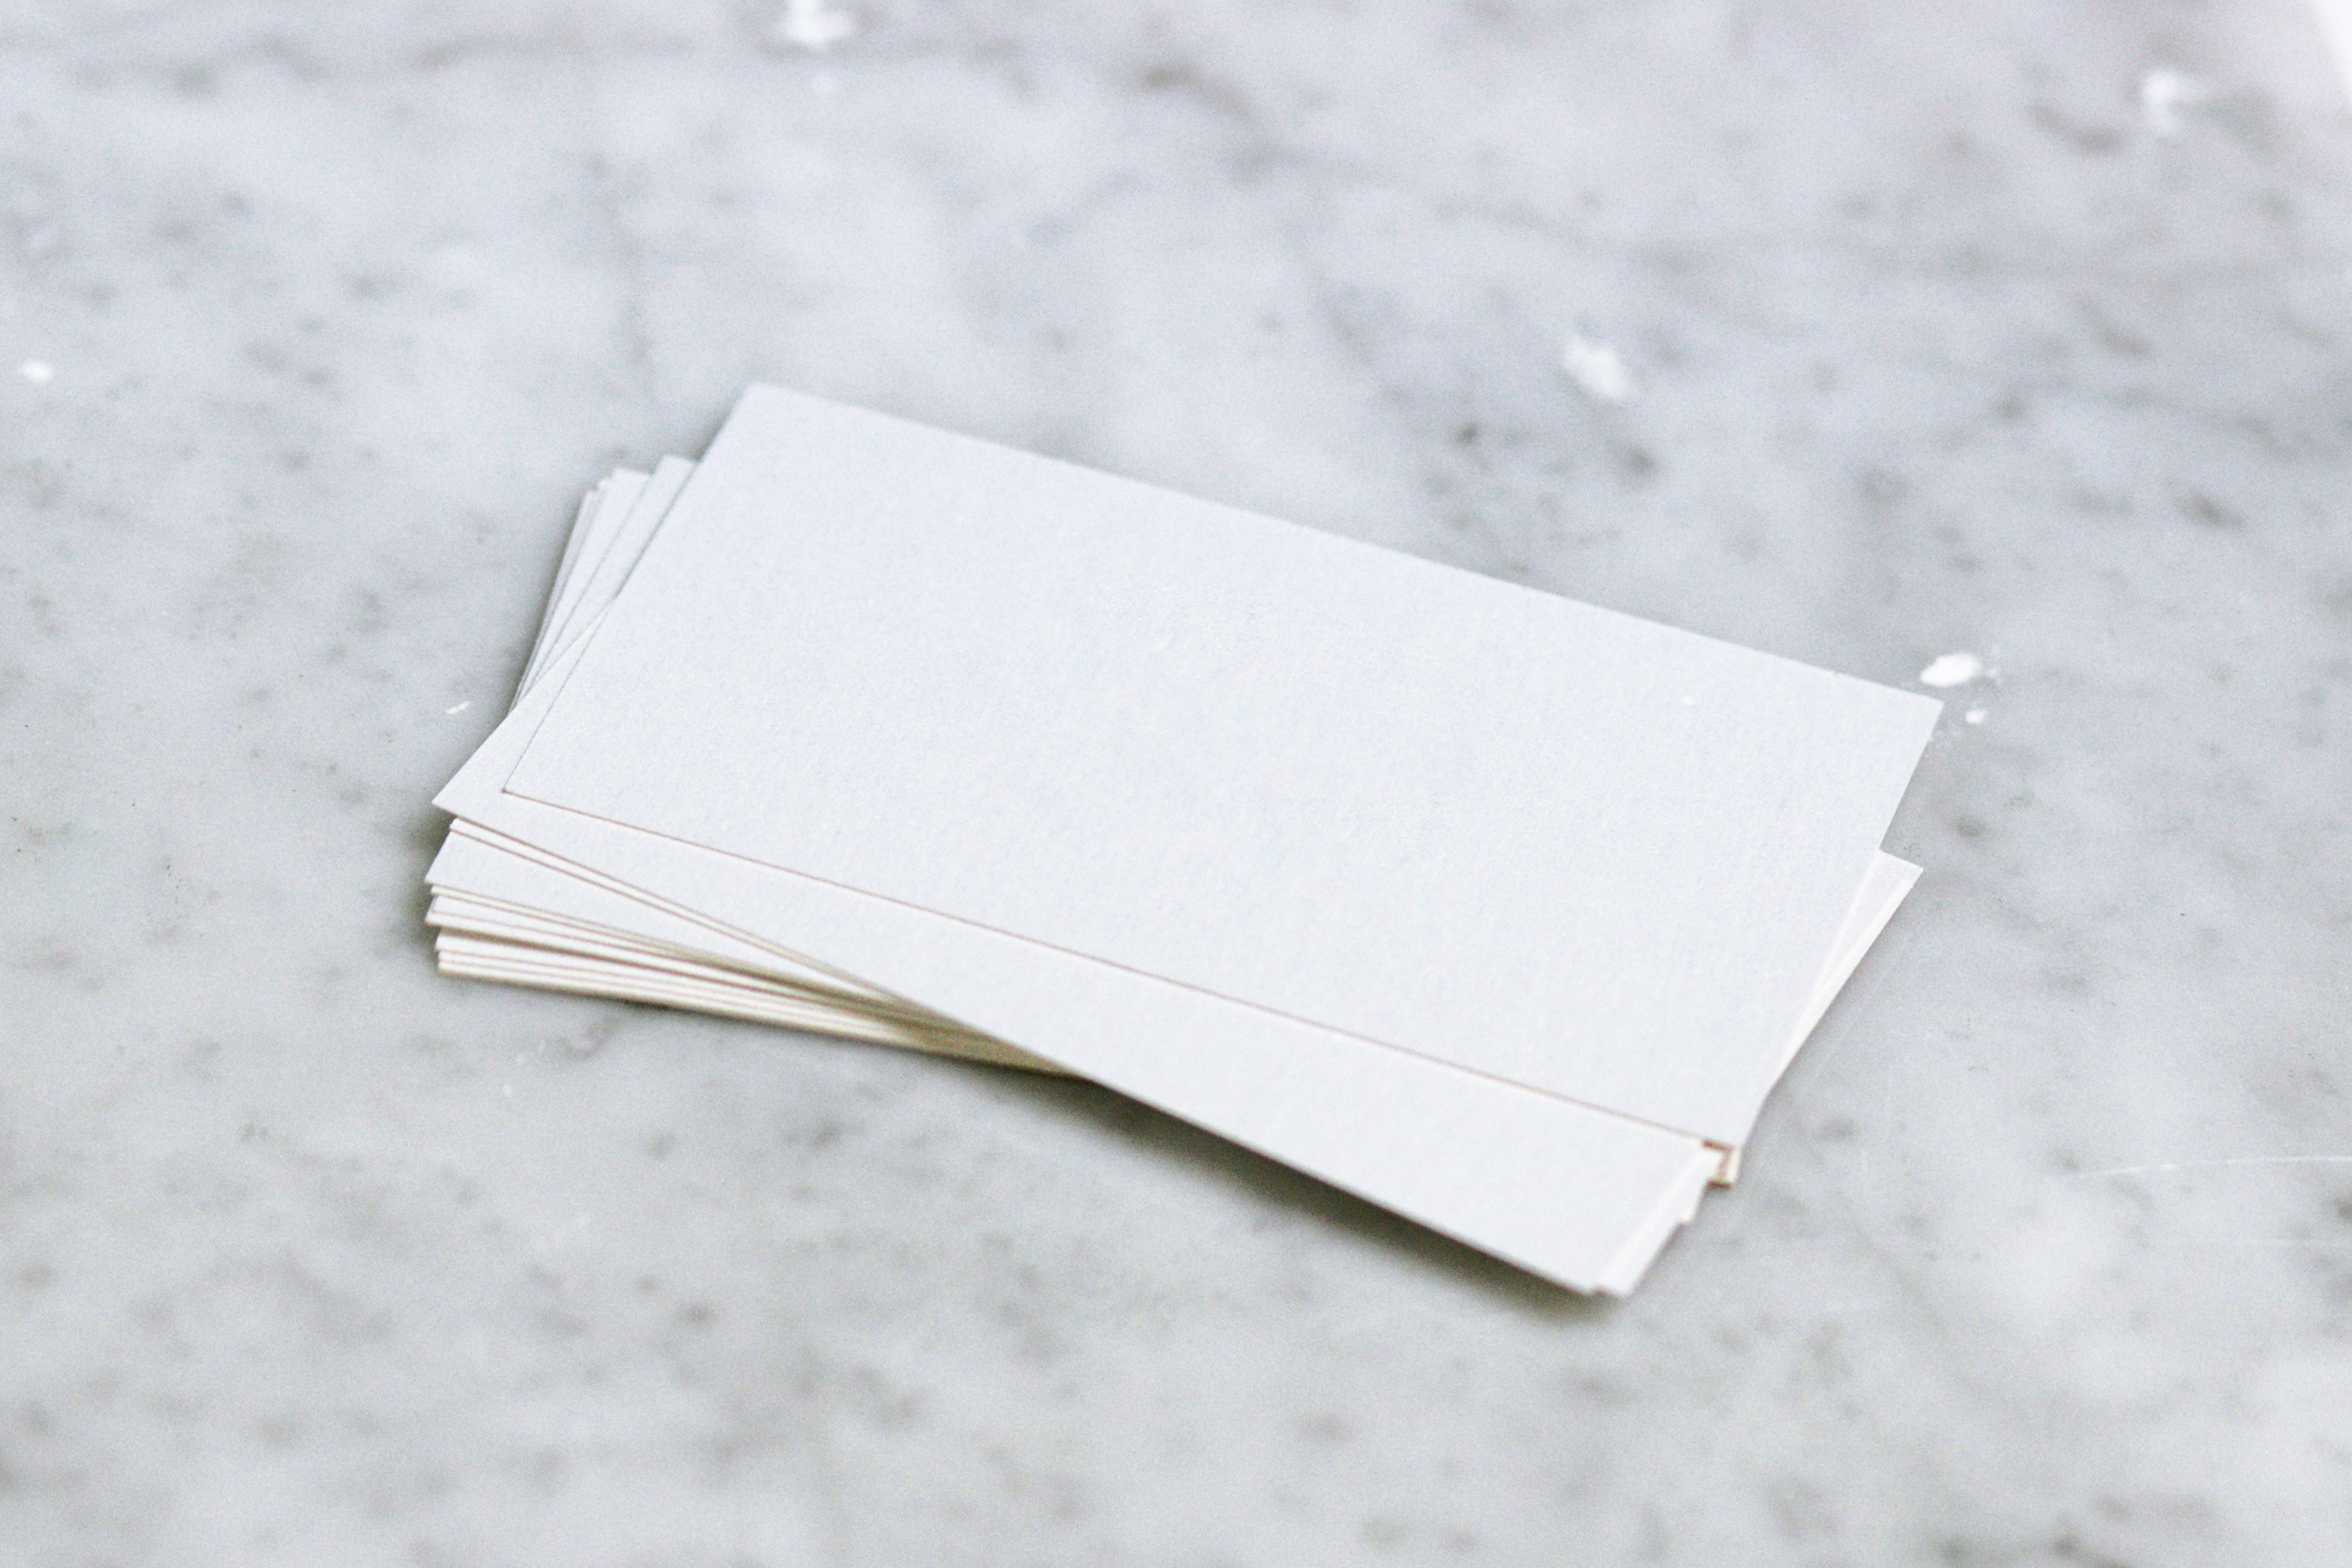 A pile of index cards on a marble countertop.